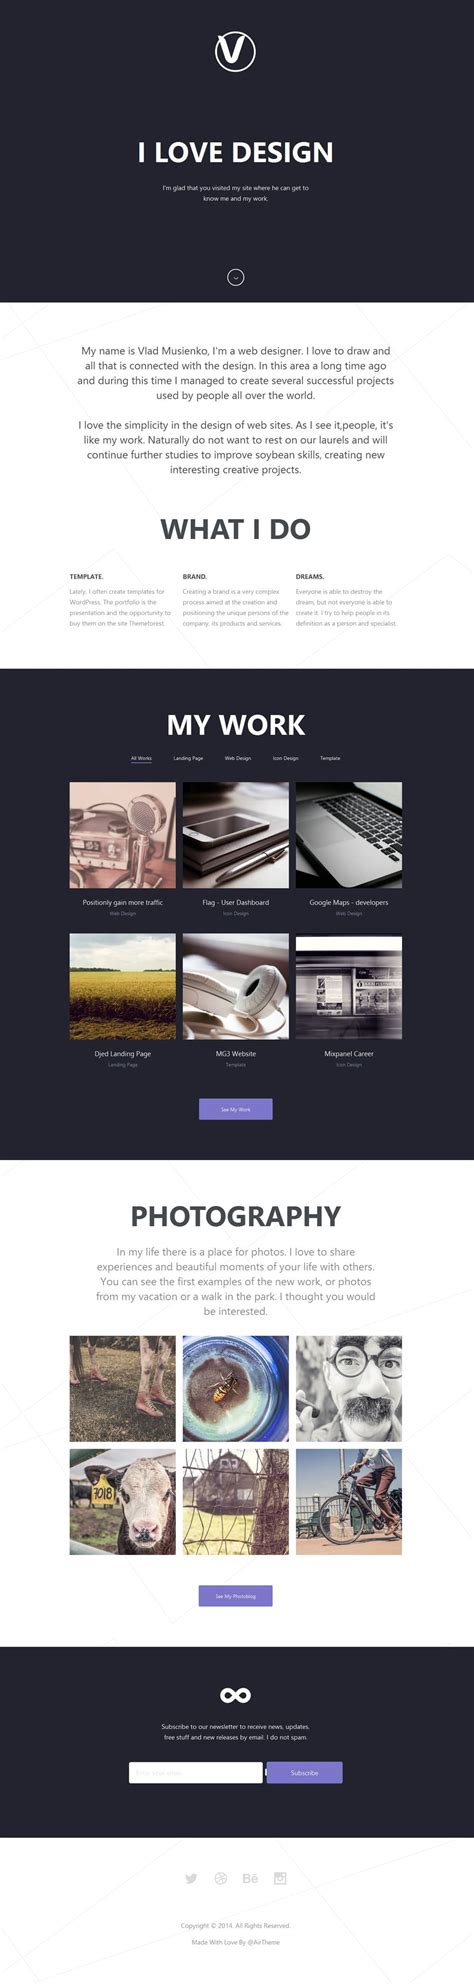 Free Corporate And Business Web Templates Psd Personal Business Website Templates